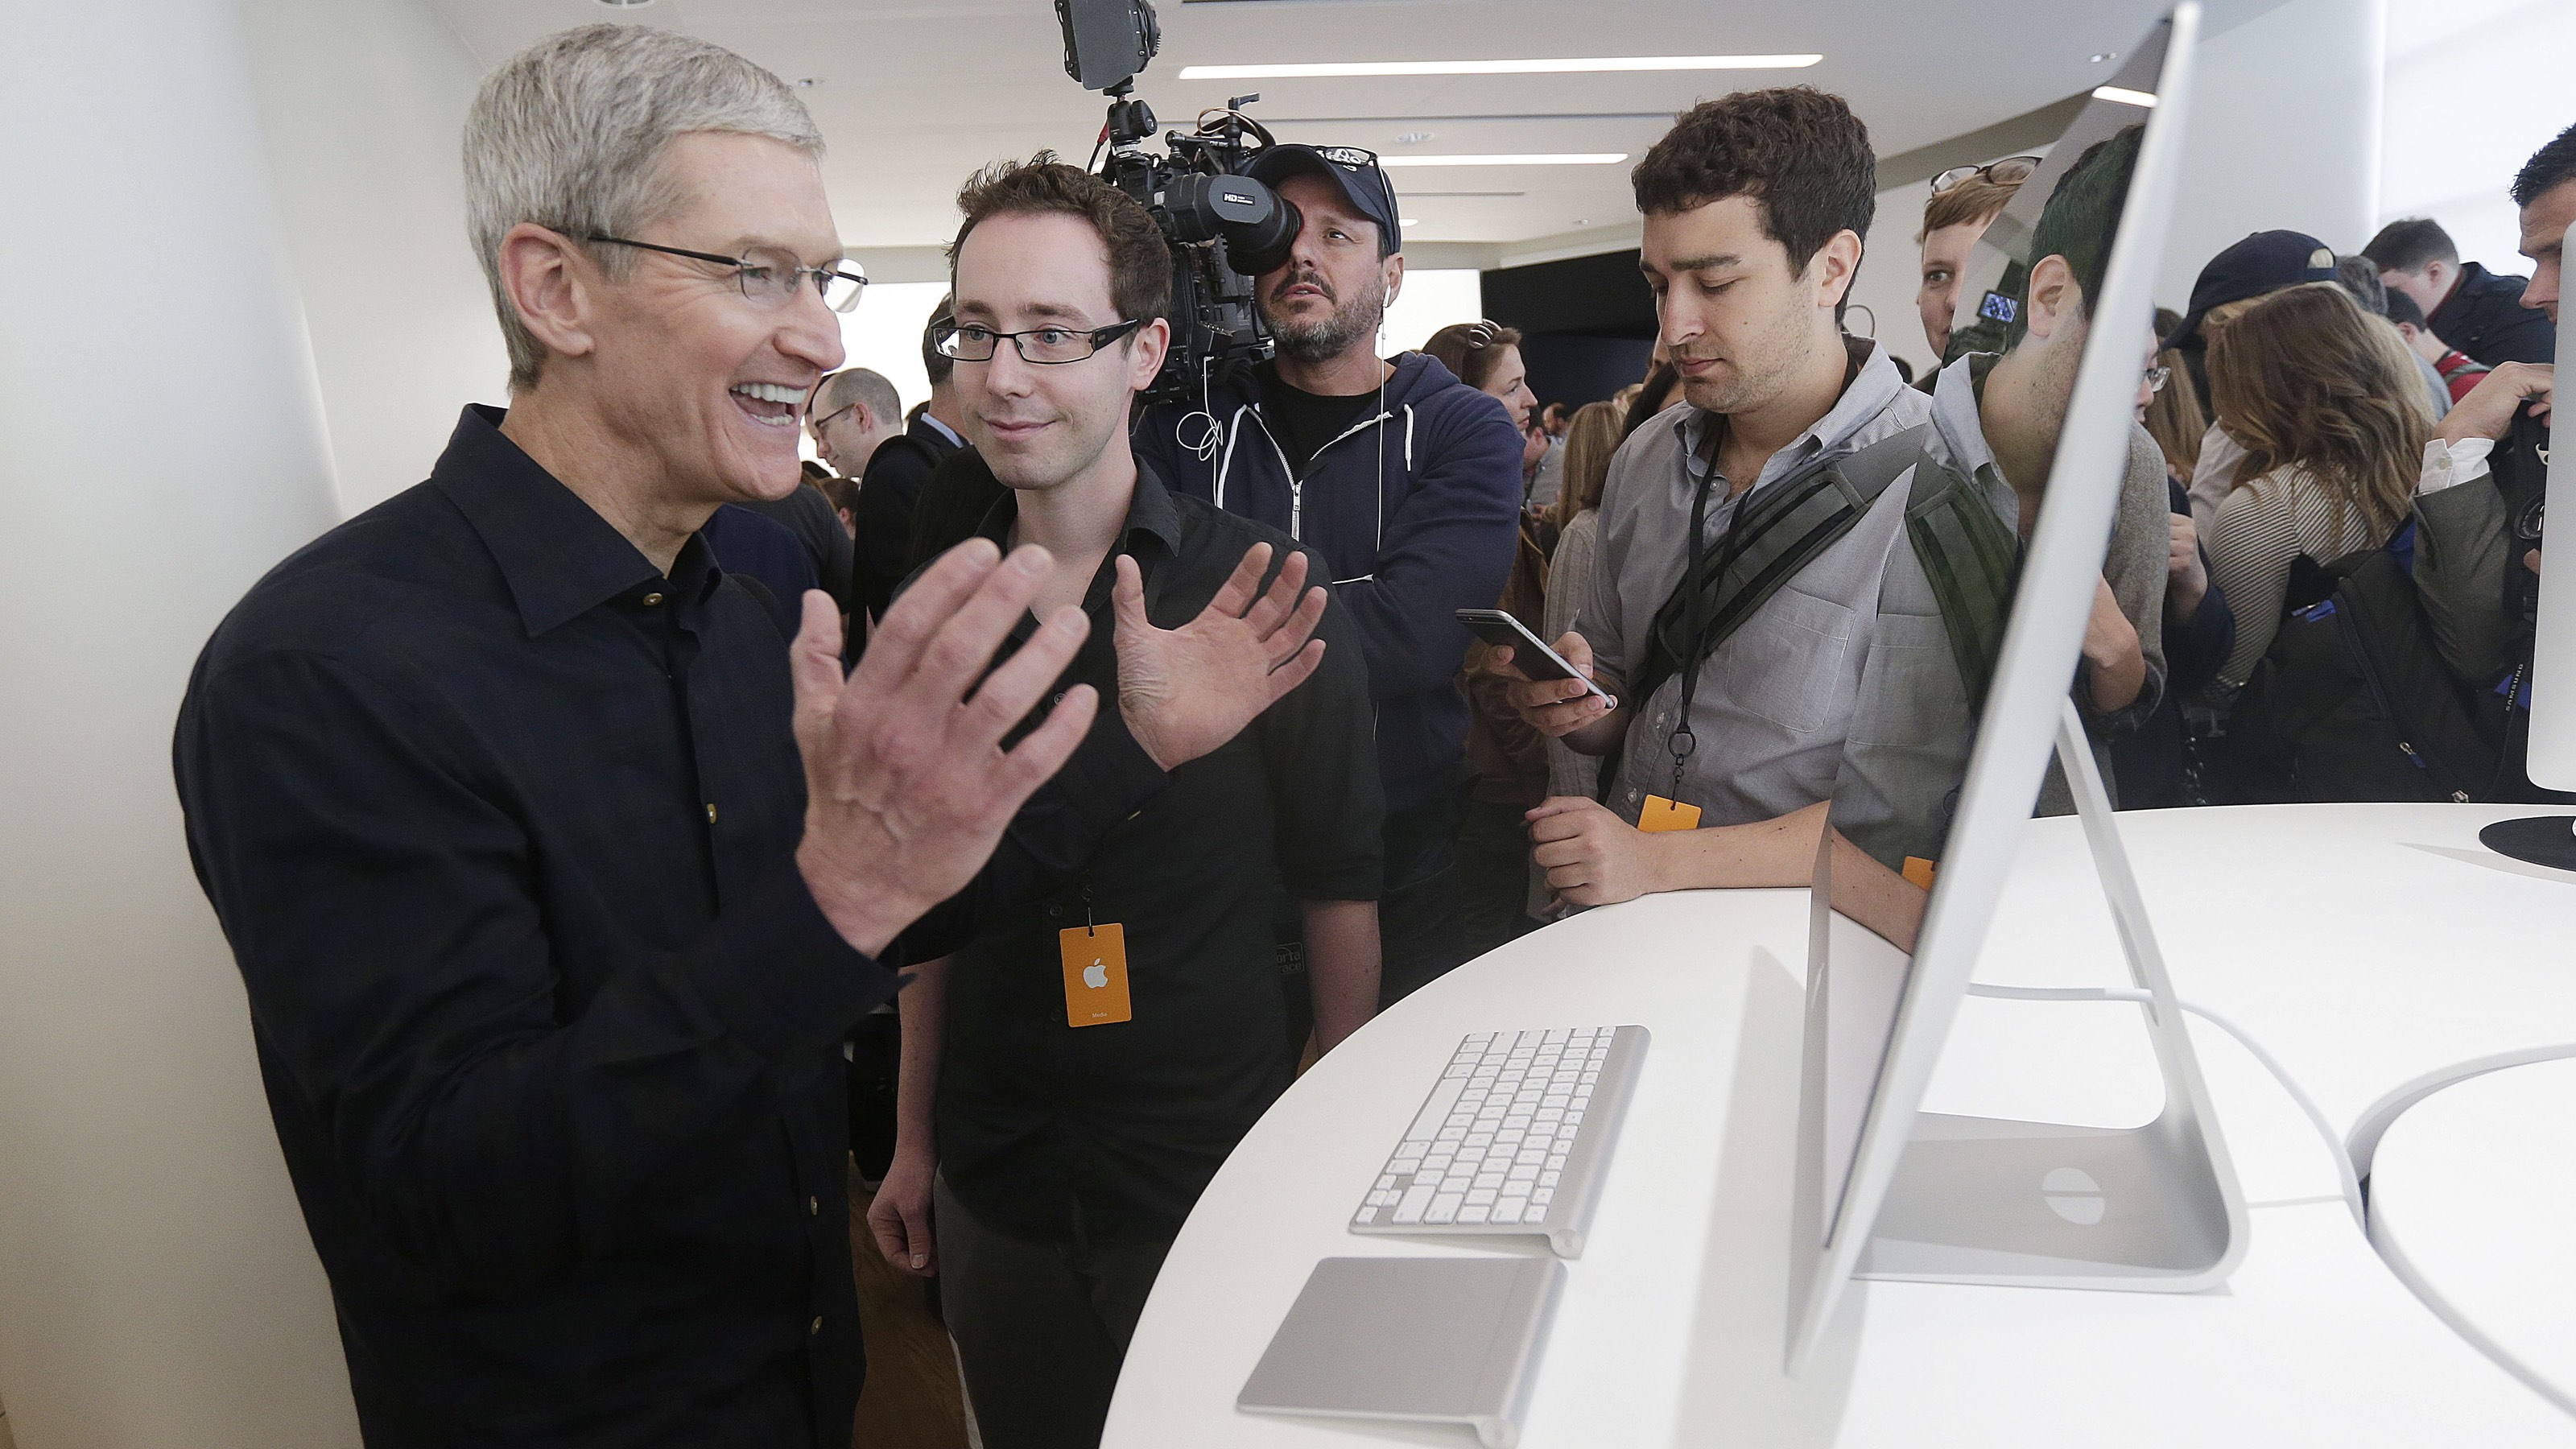 Apple CEO Tim Cook jokes with an employee as he looks at a new iMac at Apple headquarters on Thursday, Oct. 16, 2014 in Cupertino, Calif. Apple released an update to its Mac operating system and introduced the high-resolution iMac model that might appeal to heavy watchers of television over the Internet. (AP Photo/Marcio Jose Sanchez)